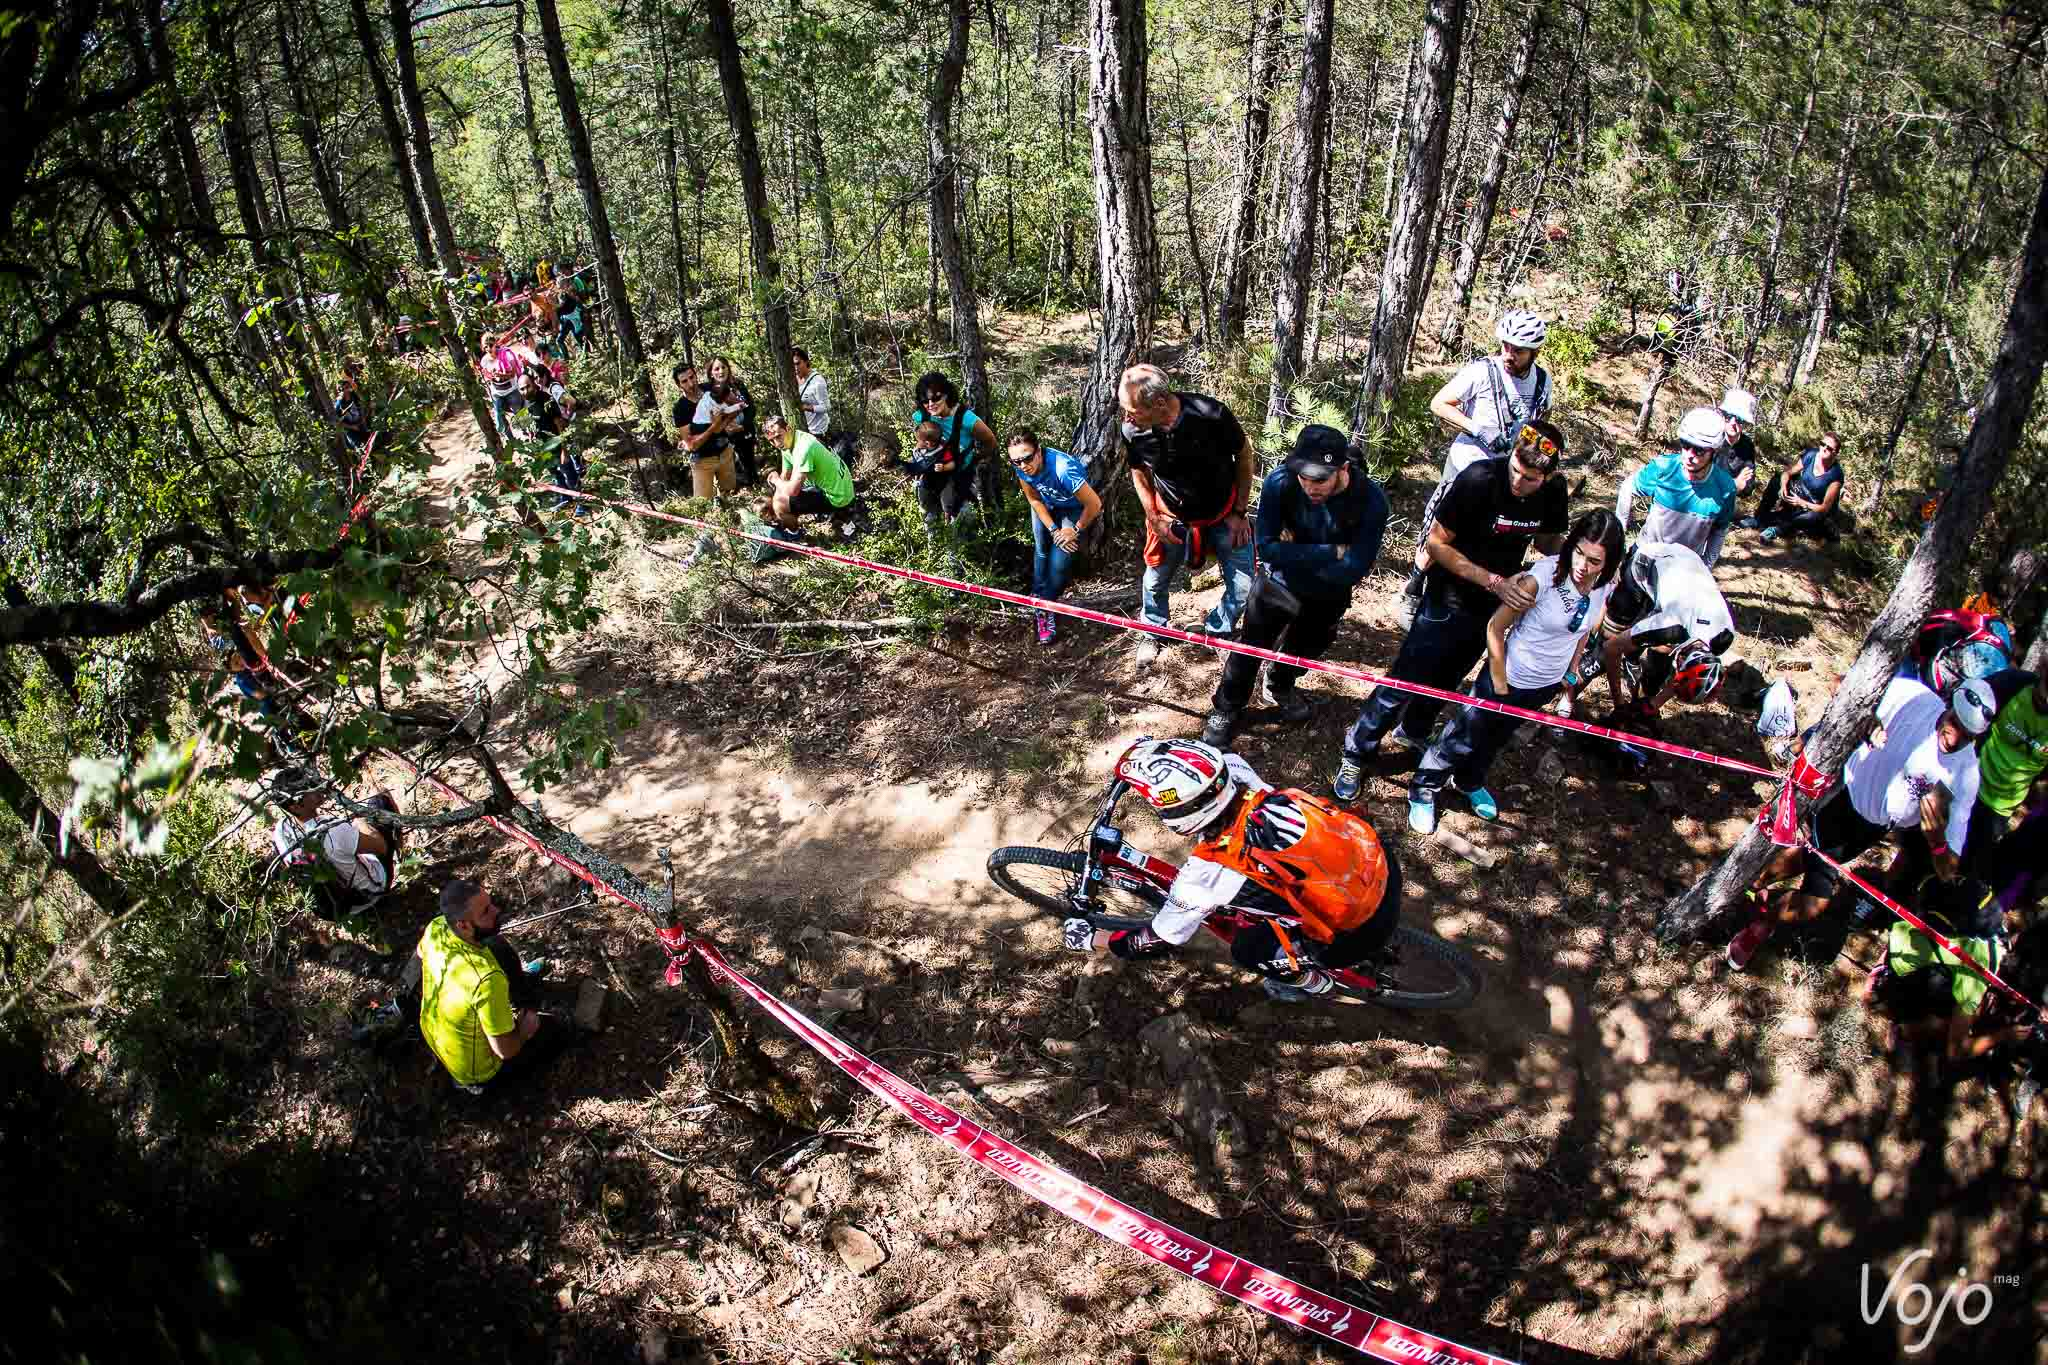 Enduro_World_Series_7_Spain_Ainsa_Zona_Zero_2015_Copyright_VojoMag-4